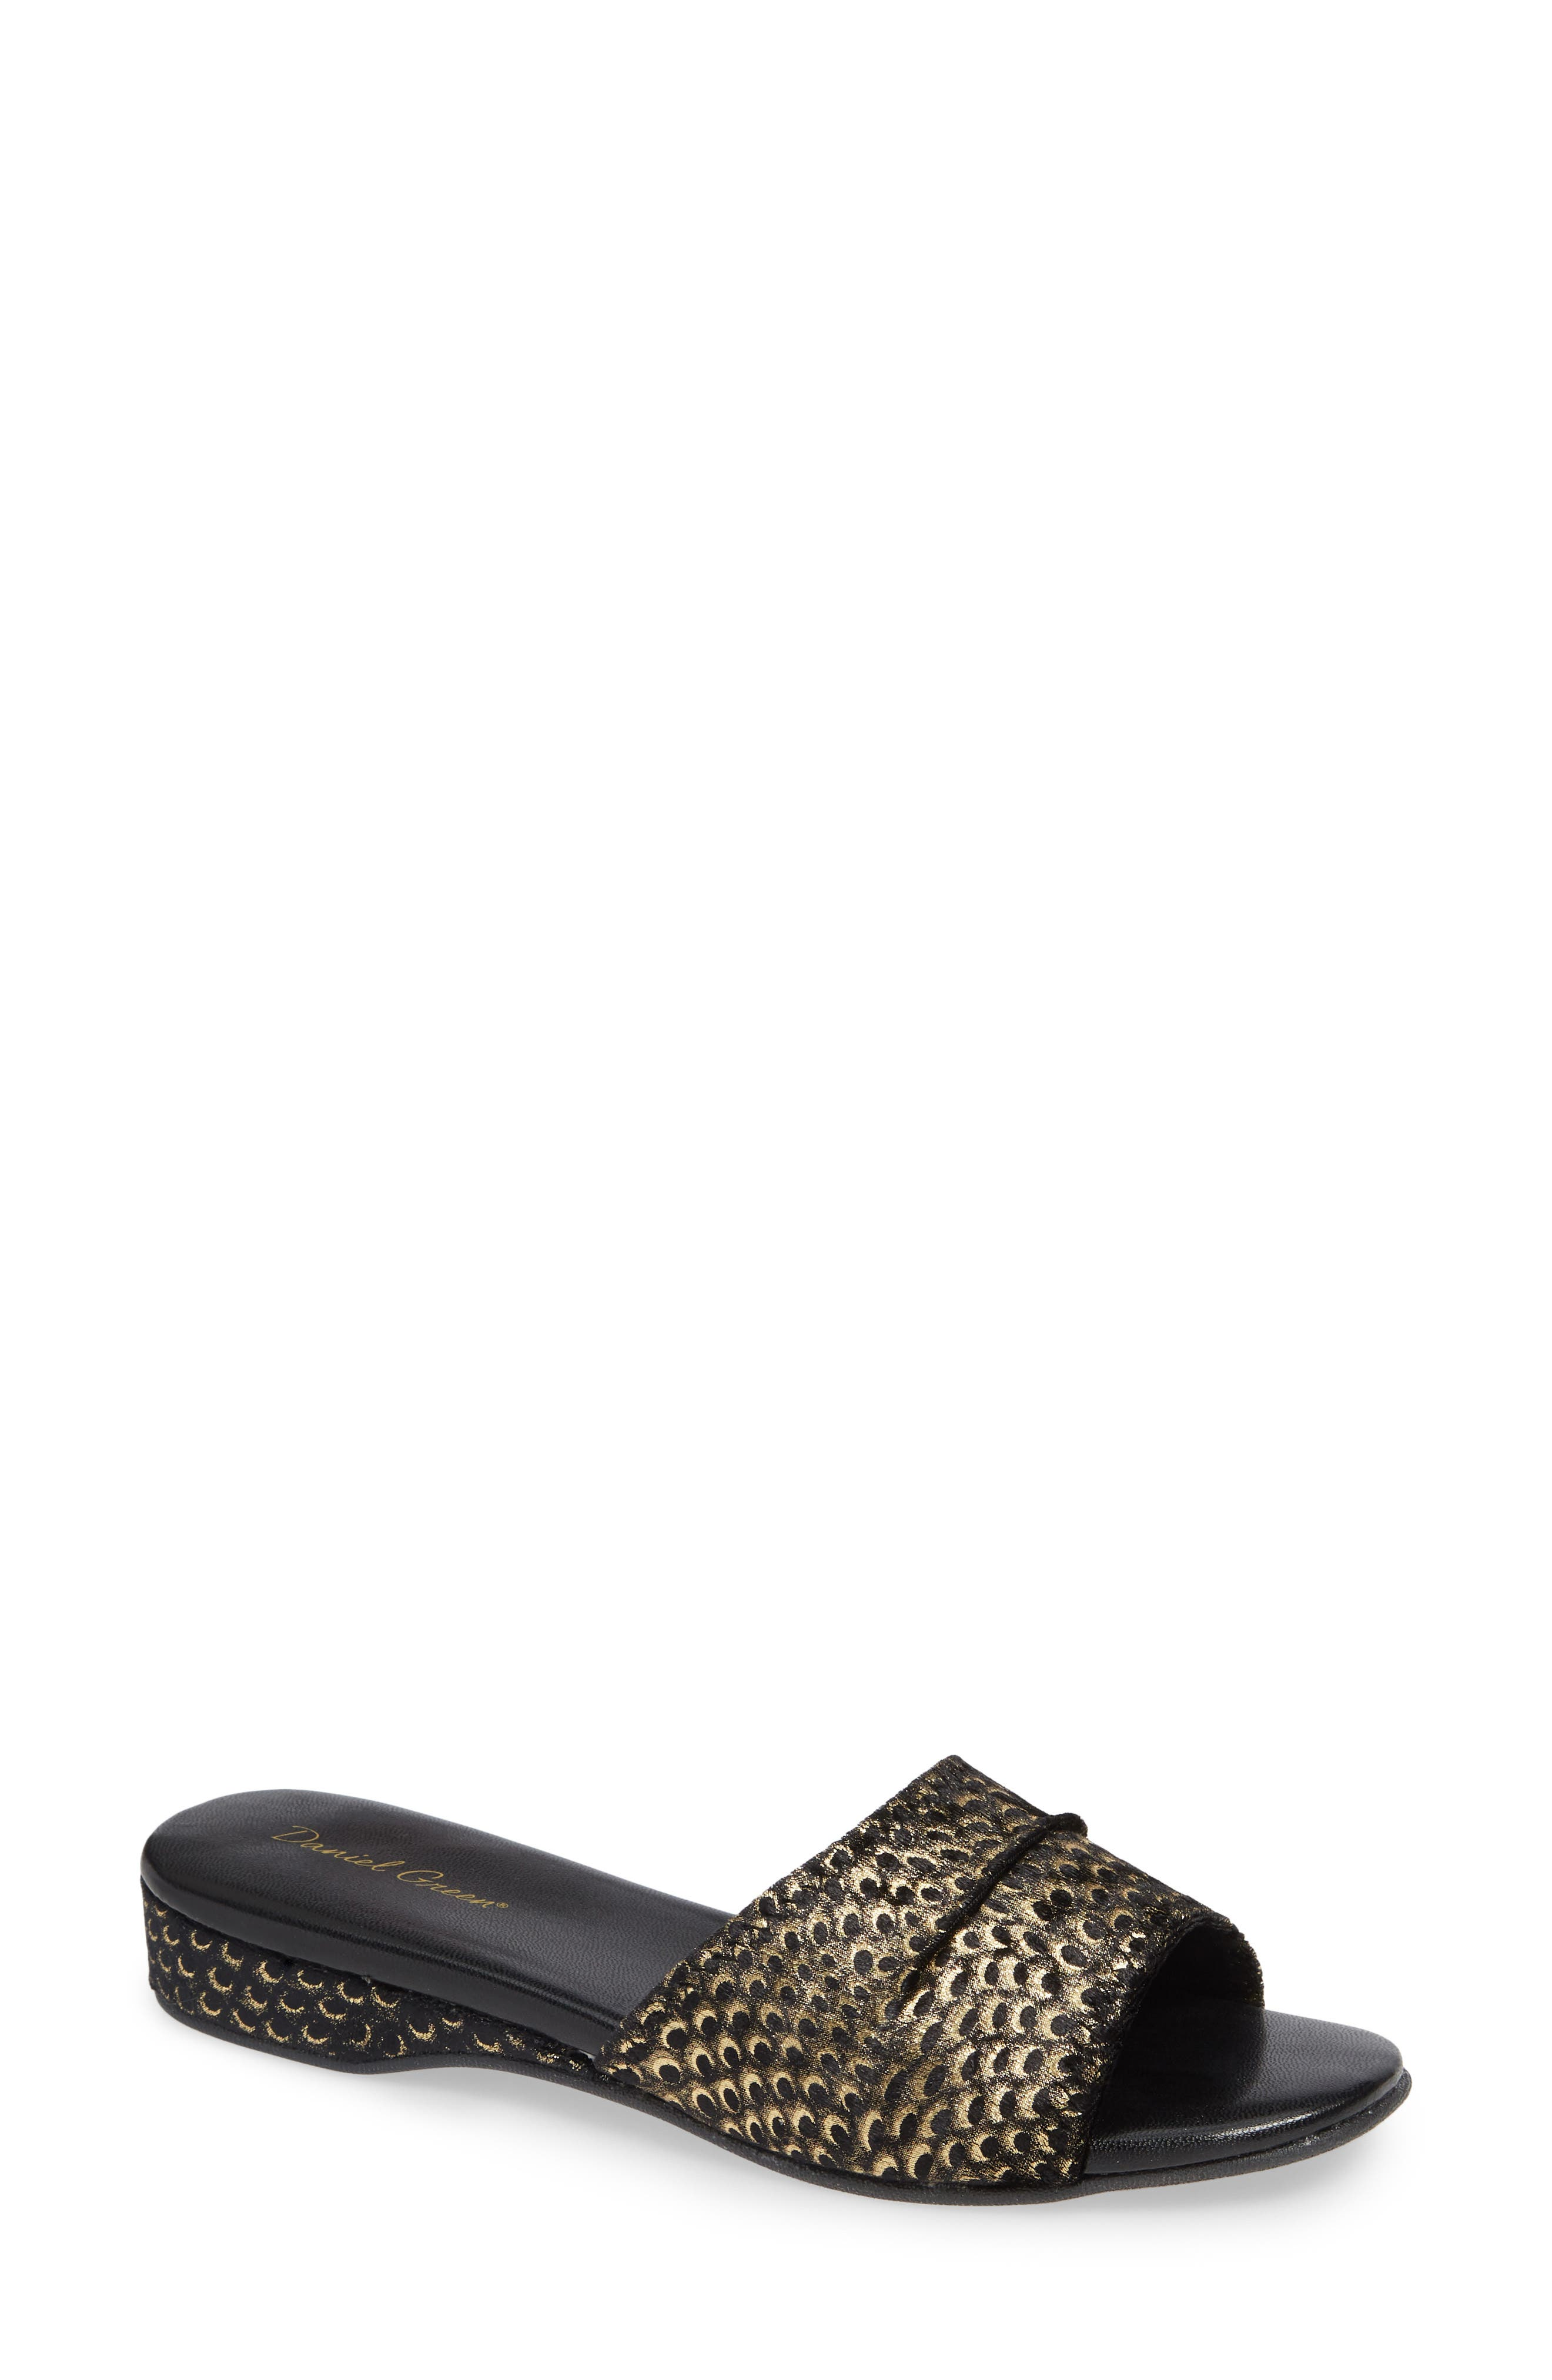 'Dormie' Slipper,                             Main thumbnail 1, color,                             BLACK/ GOLD FABRIC